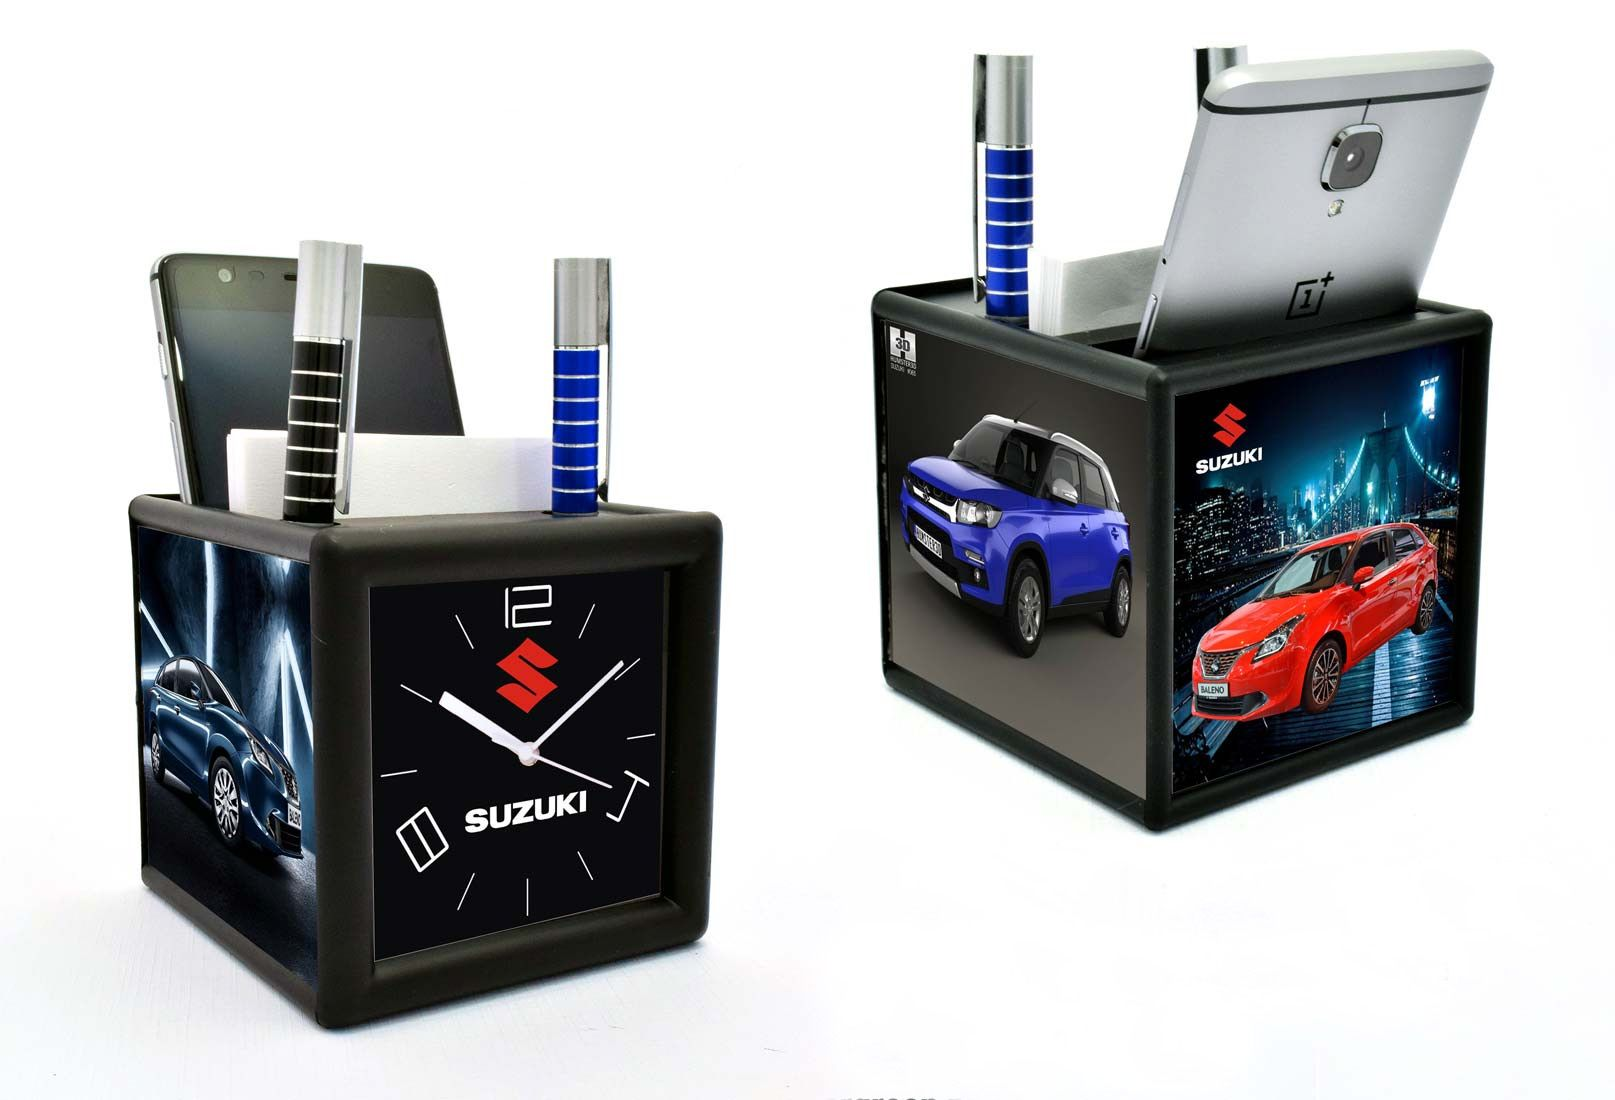 Power Plus Table Clock With Pad And Mobile Holder (4 Side Branding Area) (Branding Included) (Moq: 200 Pcs) A109